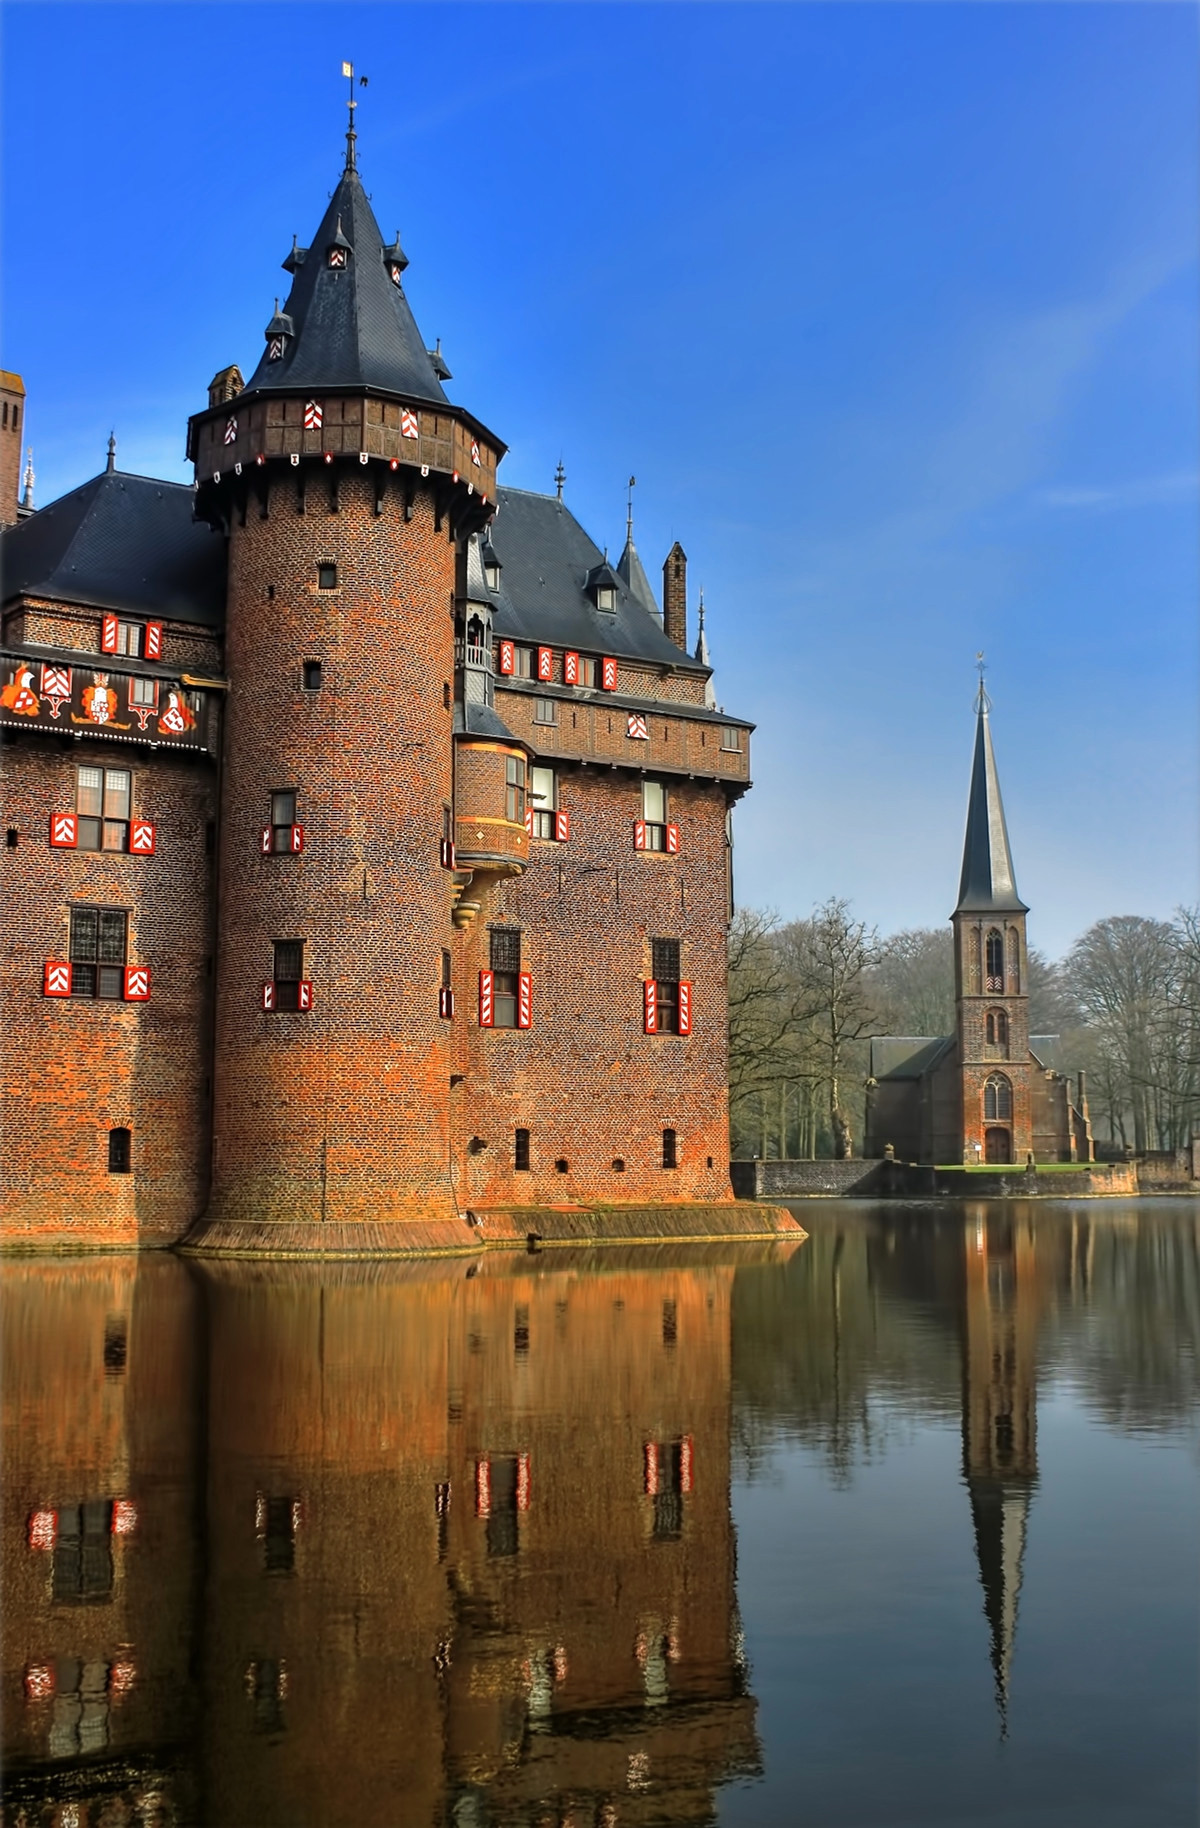 Castle de Haar Main Hall. Credit Daniel Mennerich